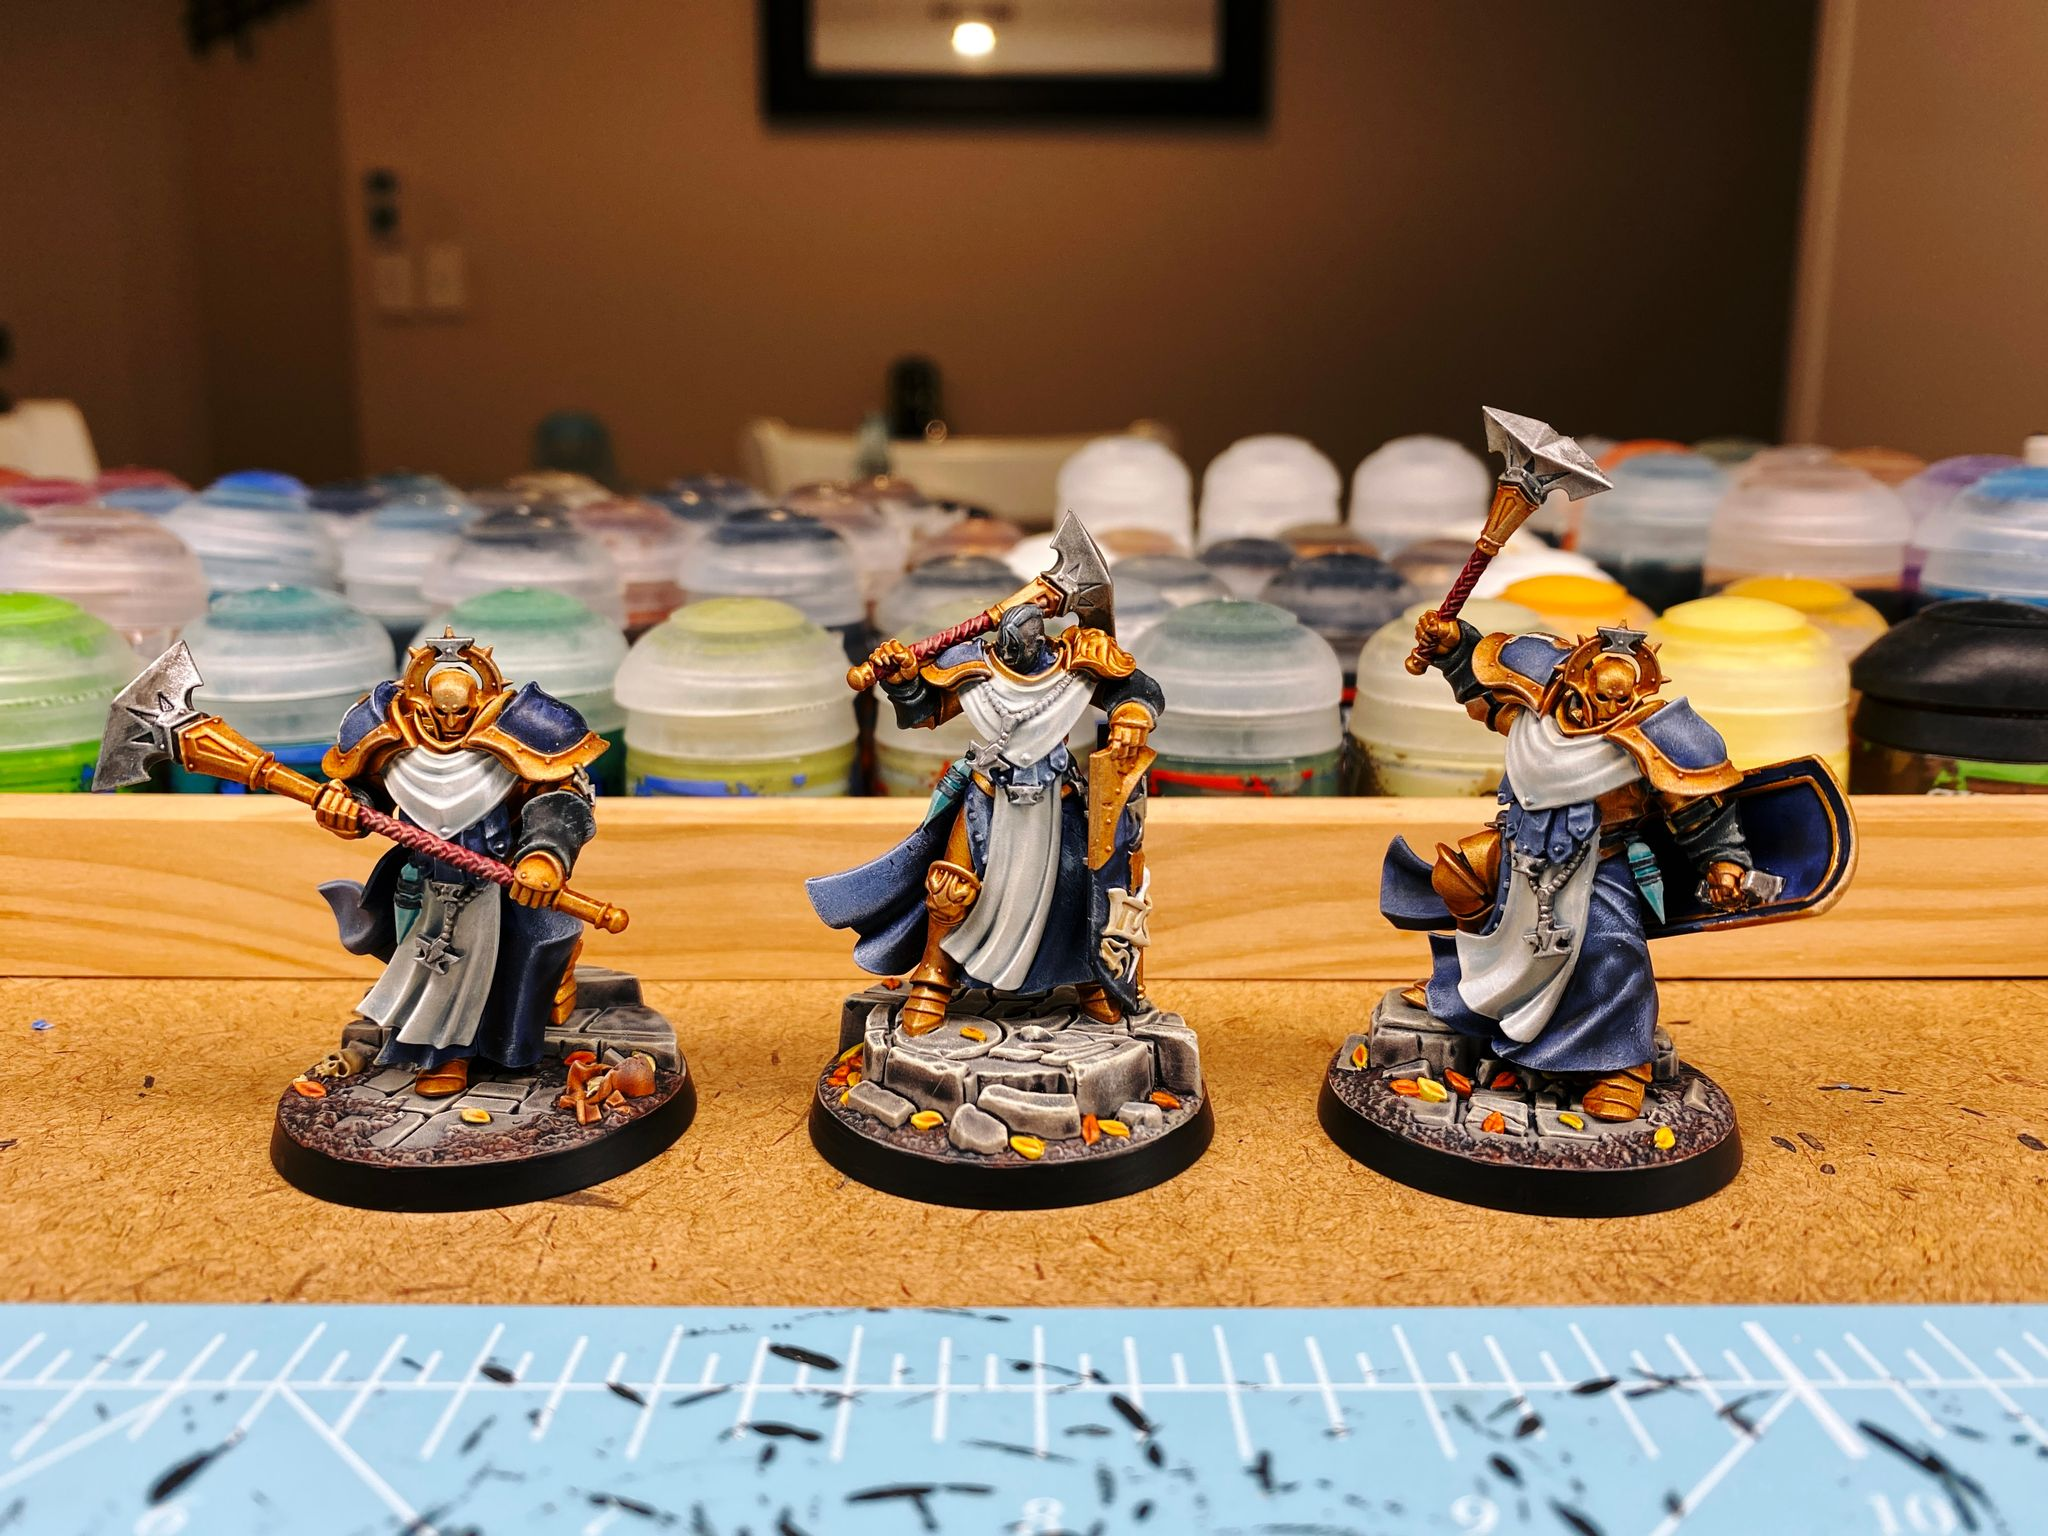 A photo of the three miniatures from the Warhammer Underworlds warband Ironsoul's Condemnors. They're armoured in heavy-looking gold armour with flowing blue robes, one's brandishing a huge hammer, another has a mace above his head mid-strike, and the third has her mace over her shoulder. The bases look like stone and have autumn leaves blowing around on them.